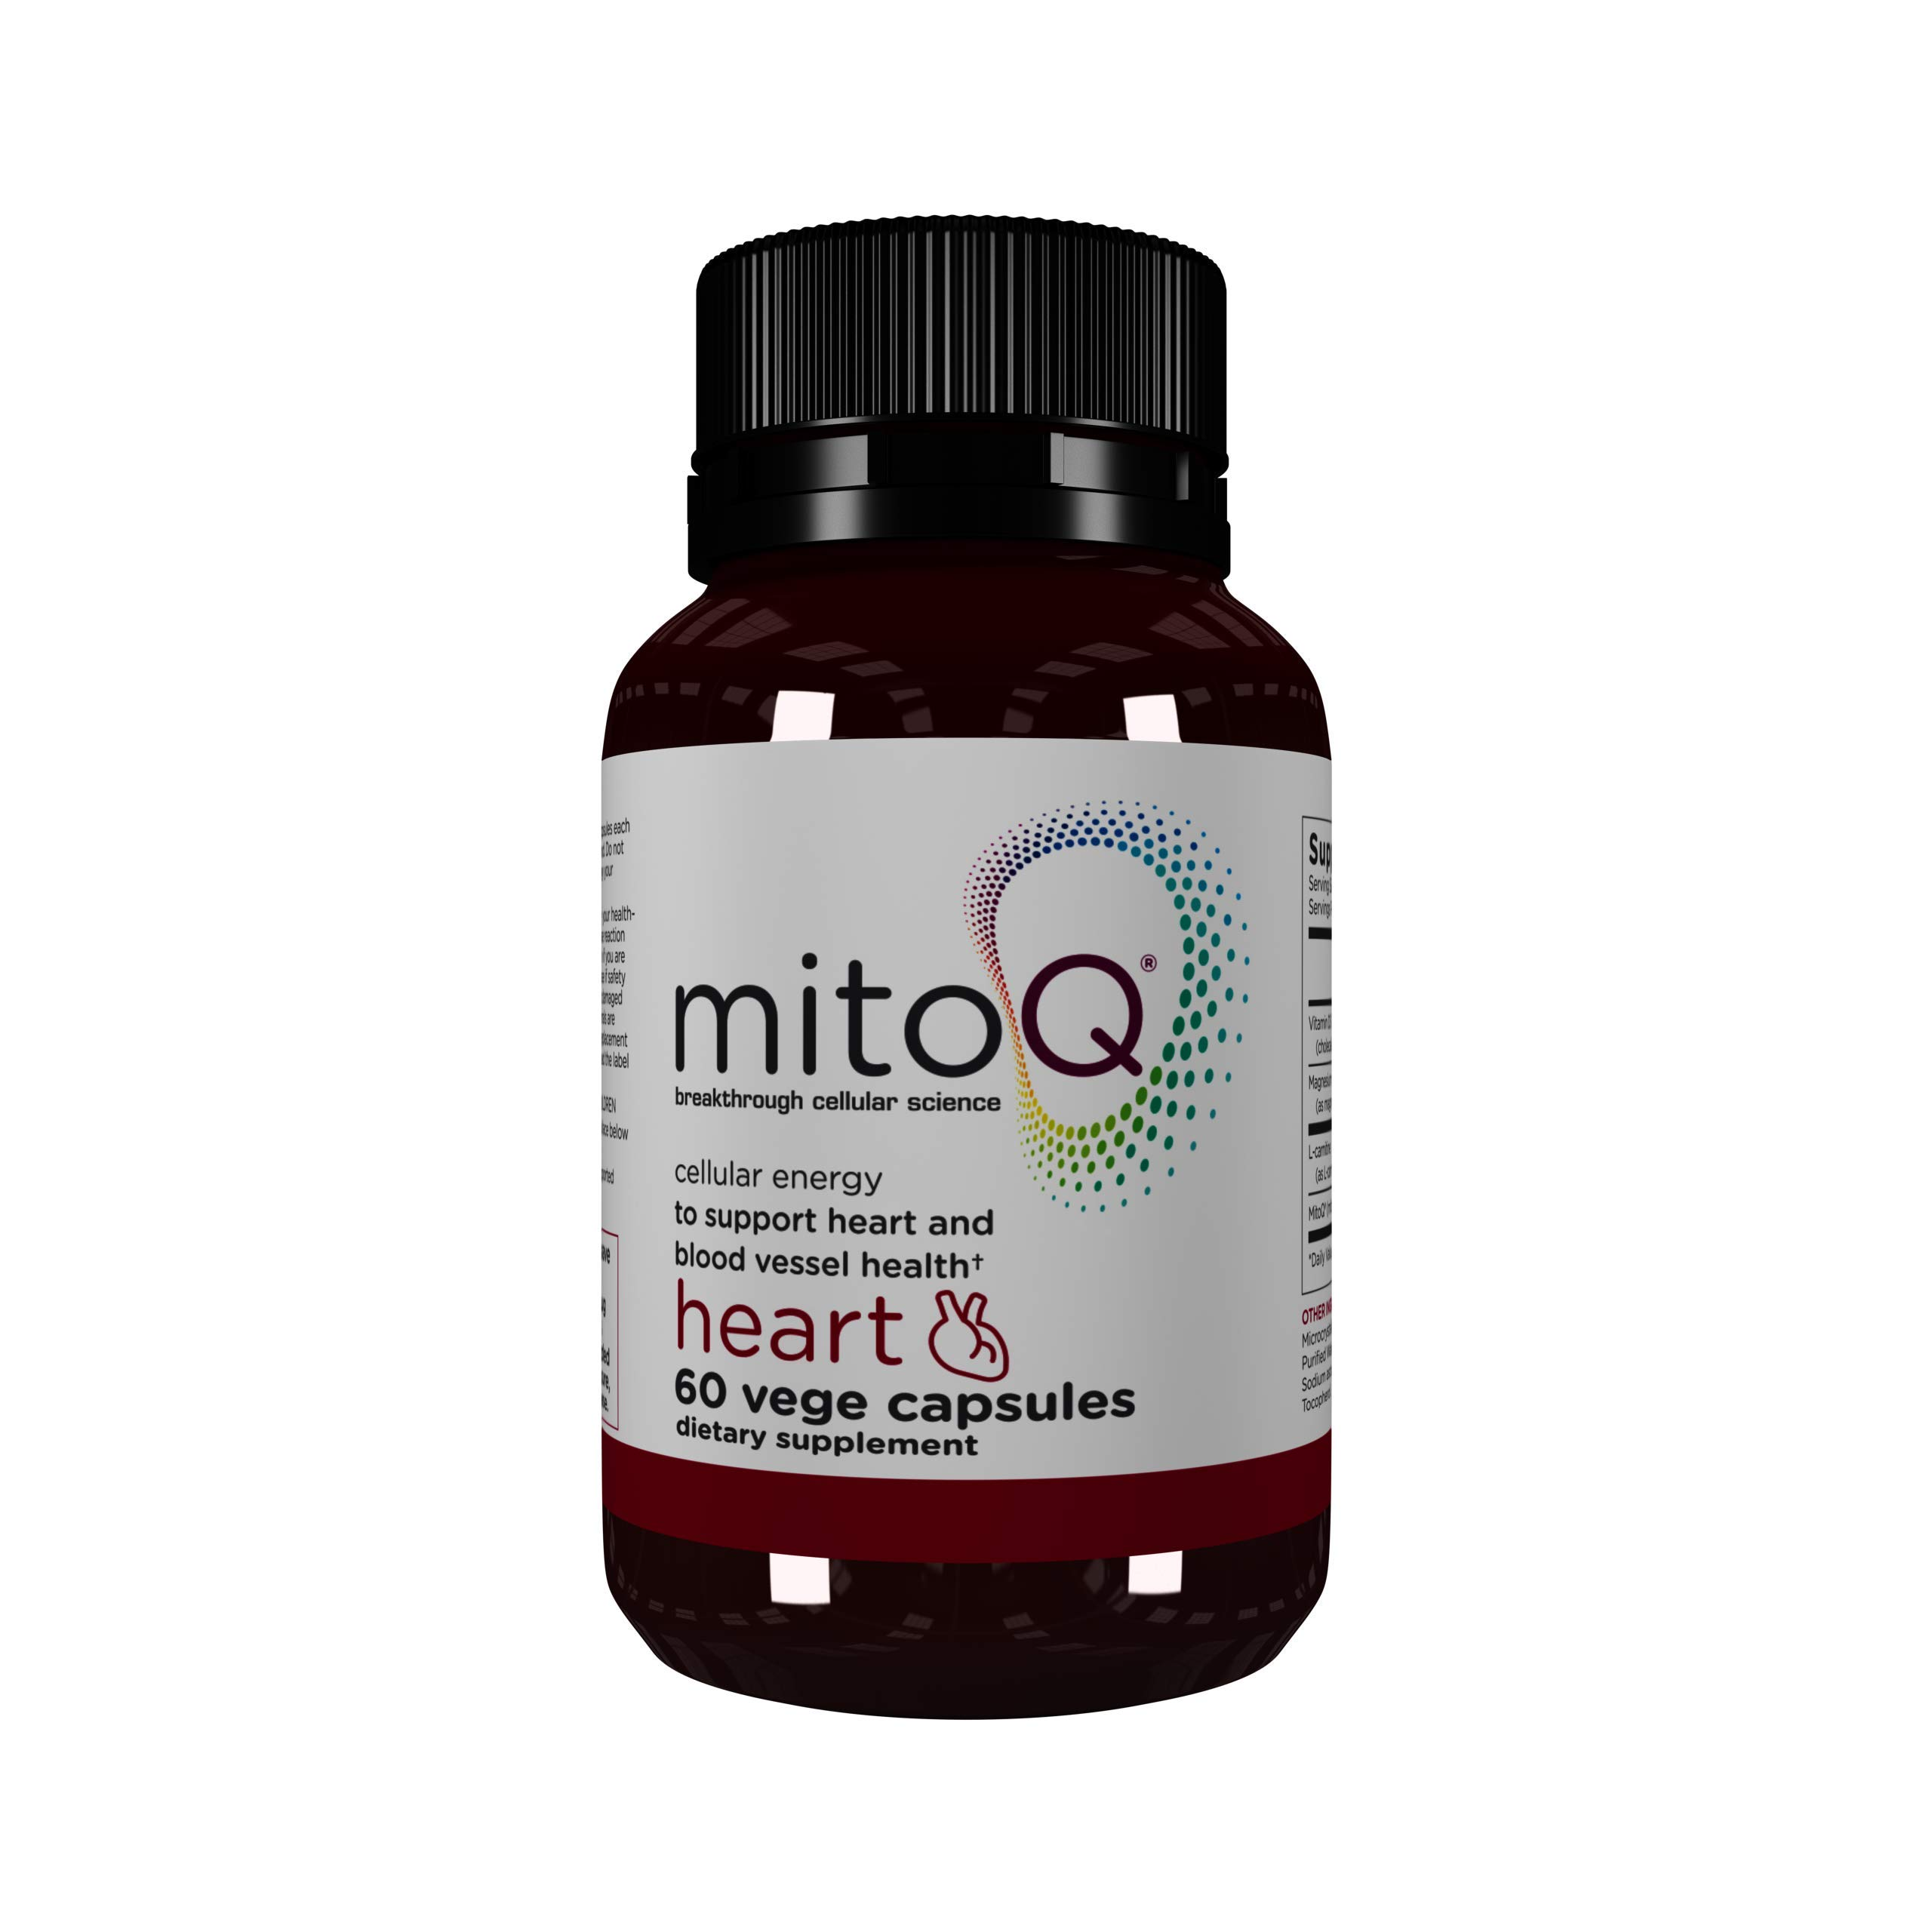 MitoQ Heart Premium CoQ10 Antioxidant - Contains Magnesium, L-Carnitine & Vitamin D3 - Supports Circulatory Health, Healthy Blood Pressure Within Normal Limits and Cellular Health - 60 Capsules